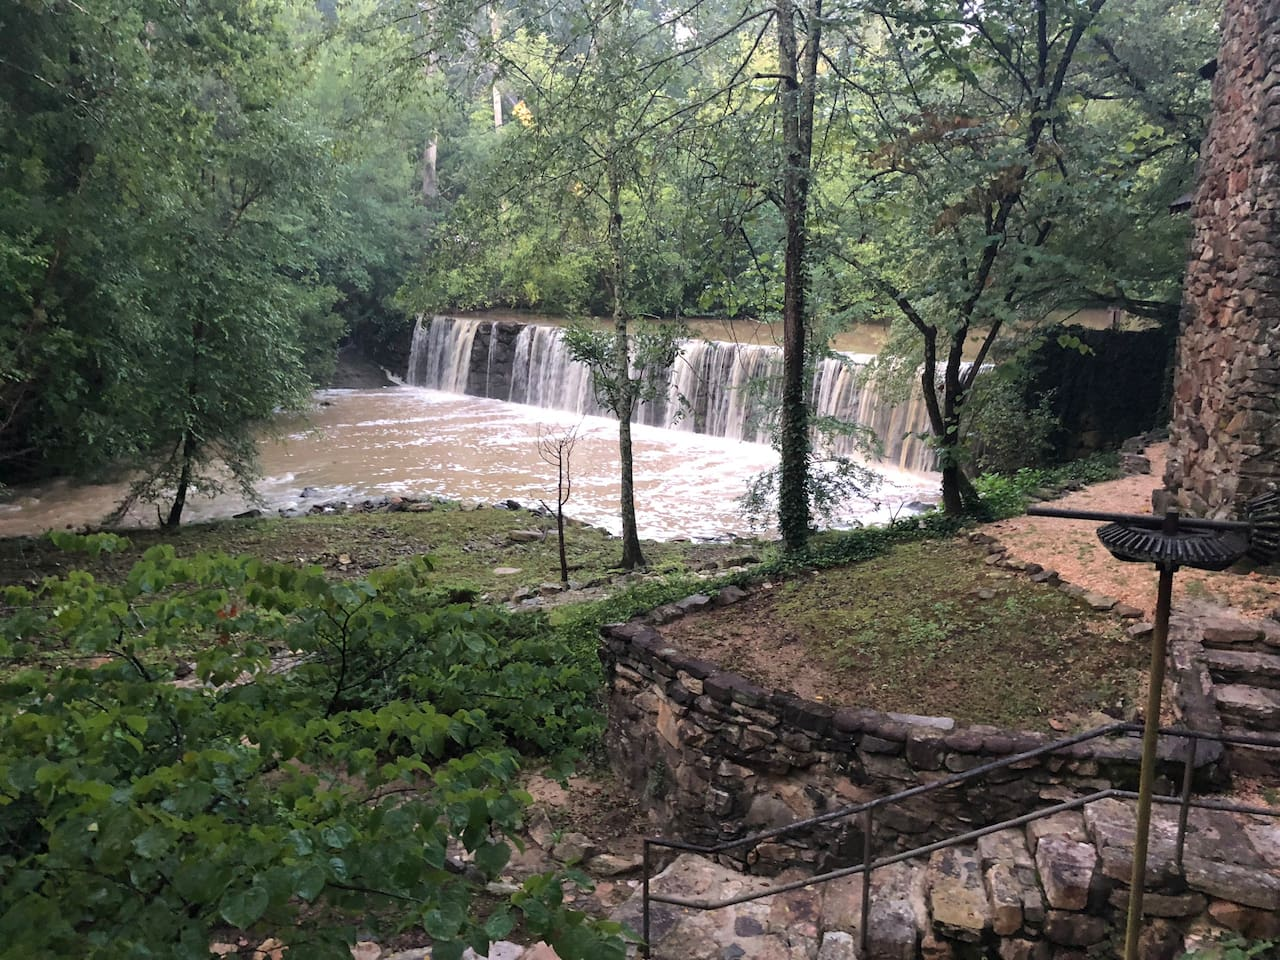 Boones Mill Dam and Waterfall